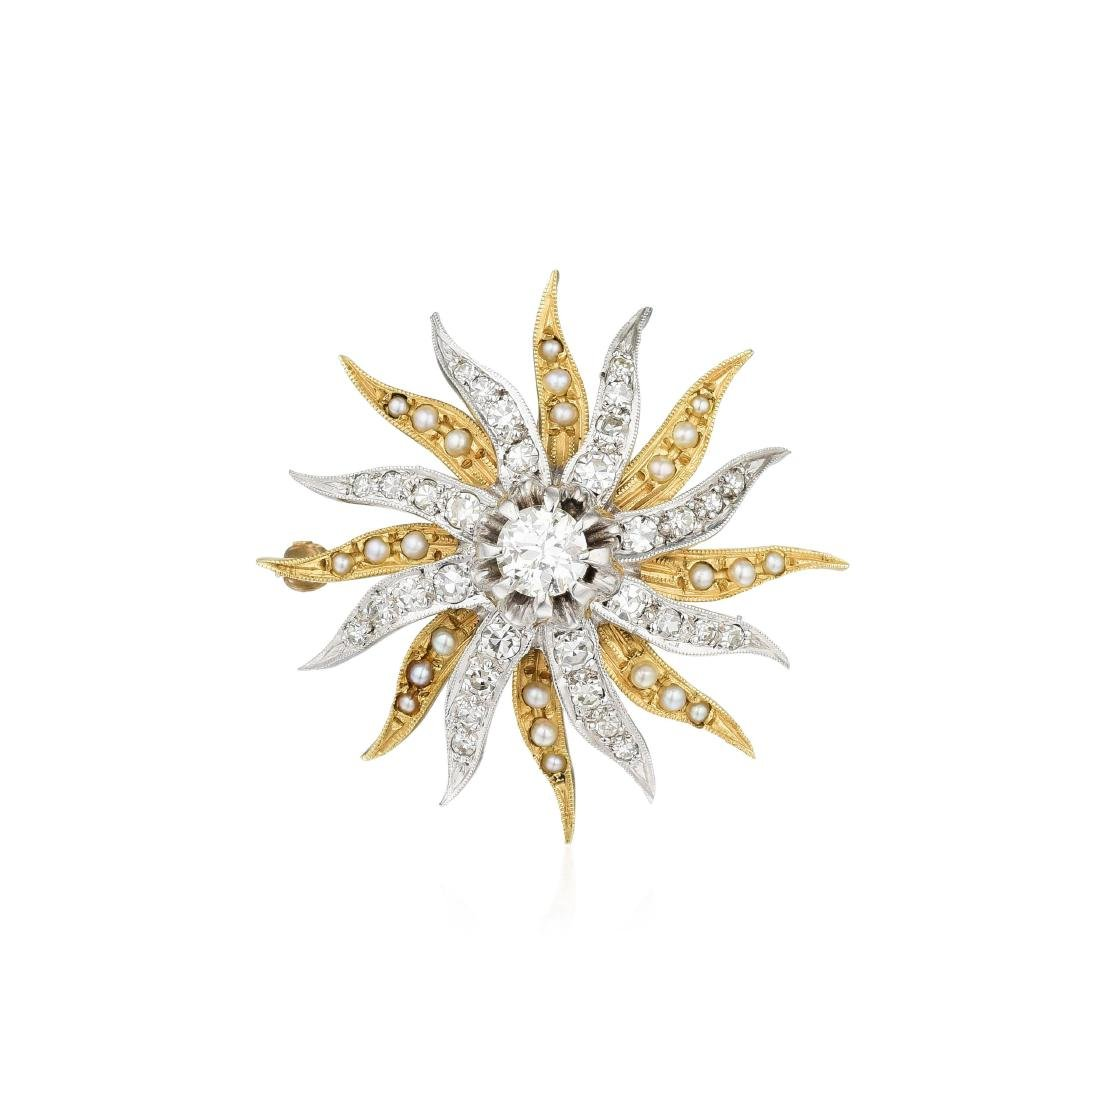 An Antique Sunburst Diamond and Pearl Brooch/Pendant